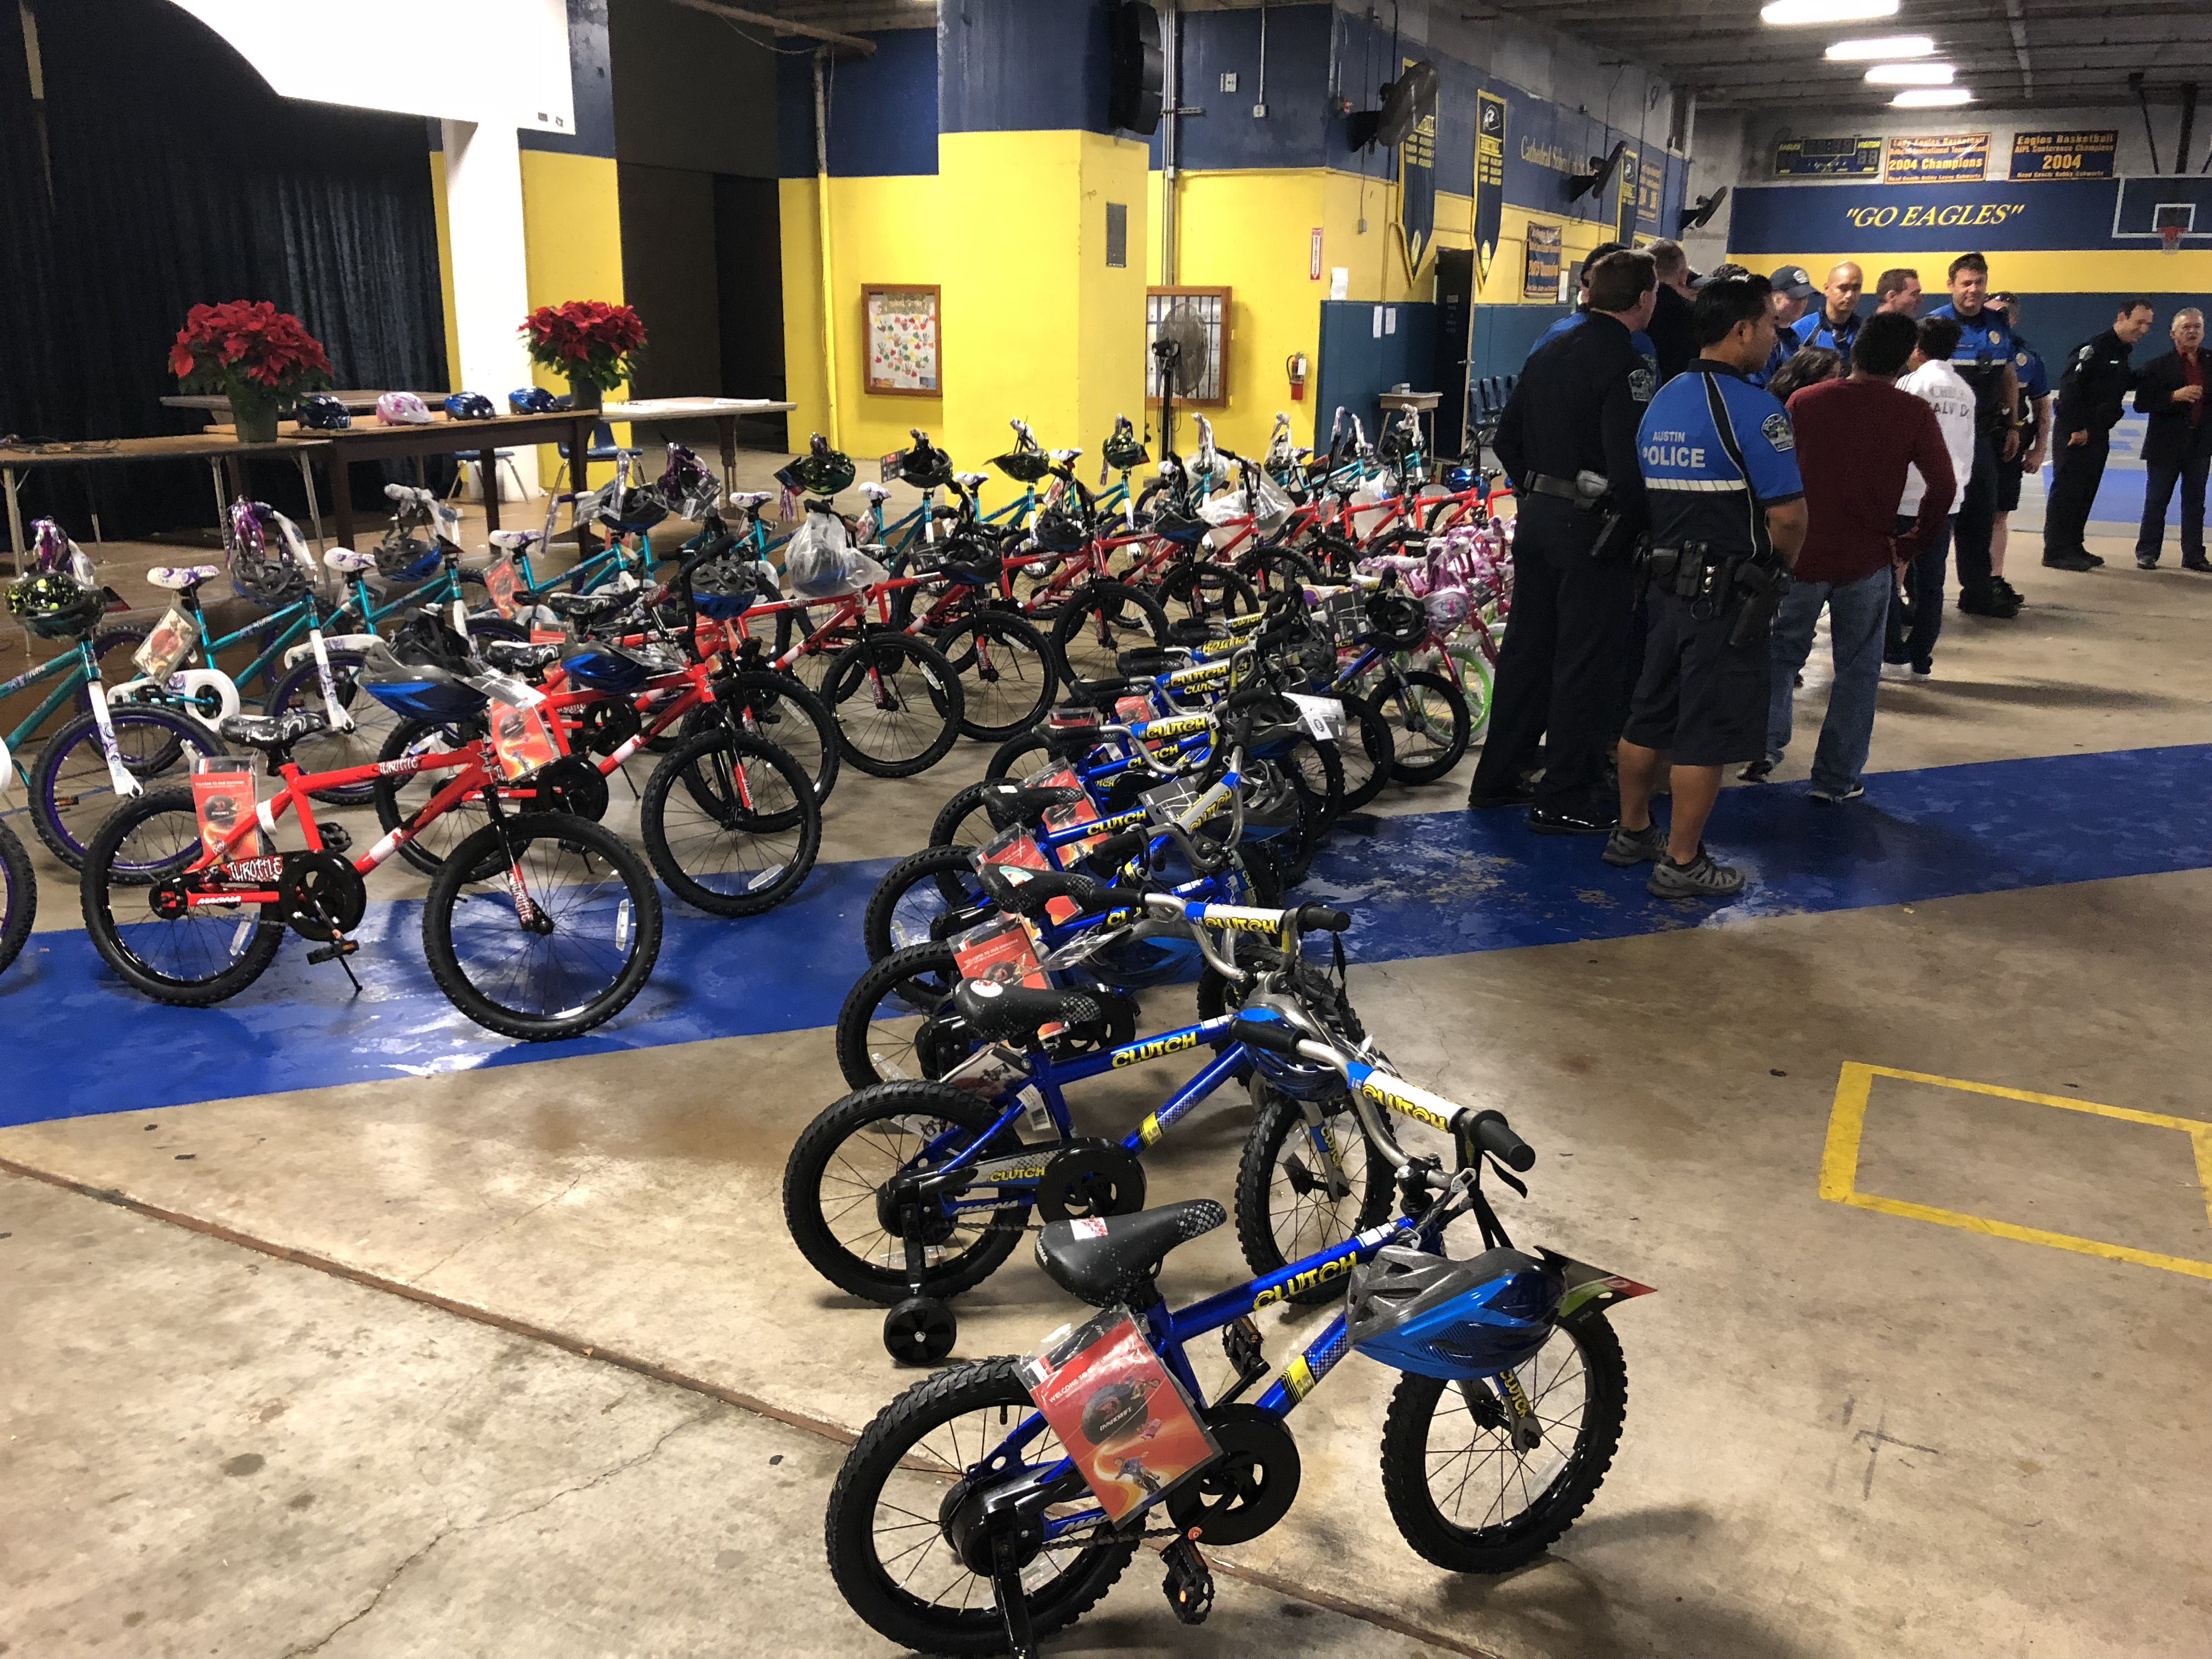 Hispanic Contractor's Association purchased bikes for children in need, and APD helped with distributing them on Dec. 22, 2017. (KXAN Photo/Julie Karam)